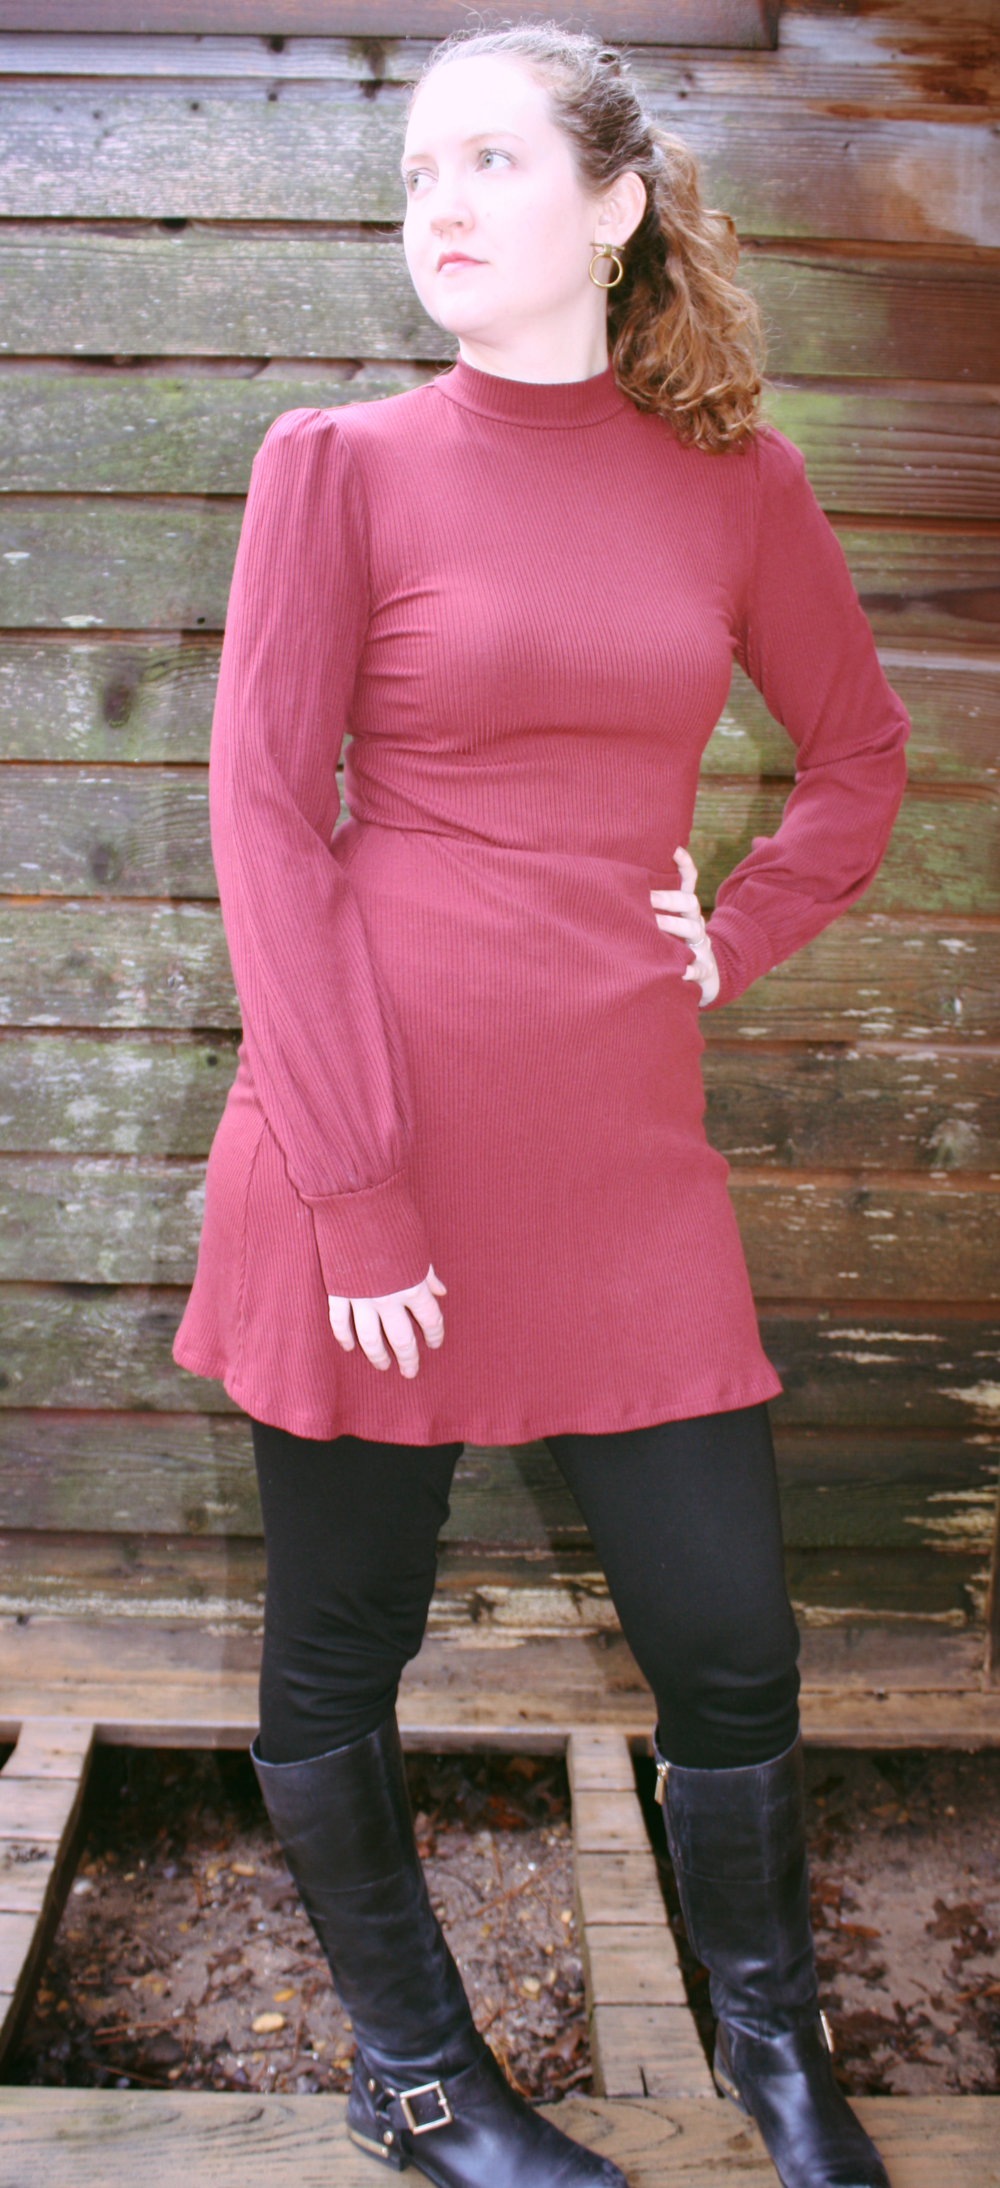 Reformation Dress + Vince Camuto Leggings + Vince Camuto Boots